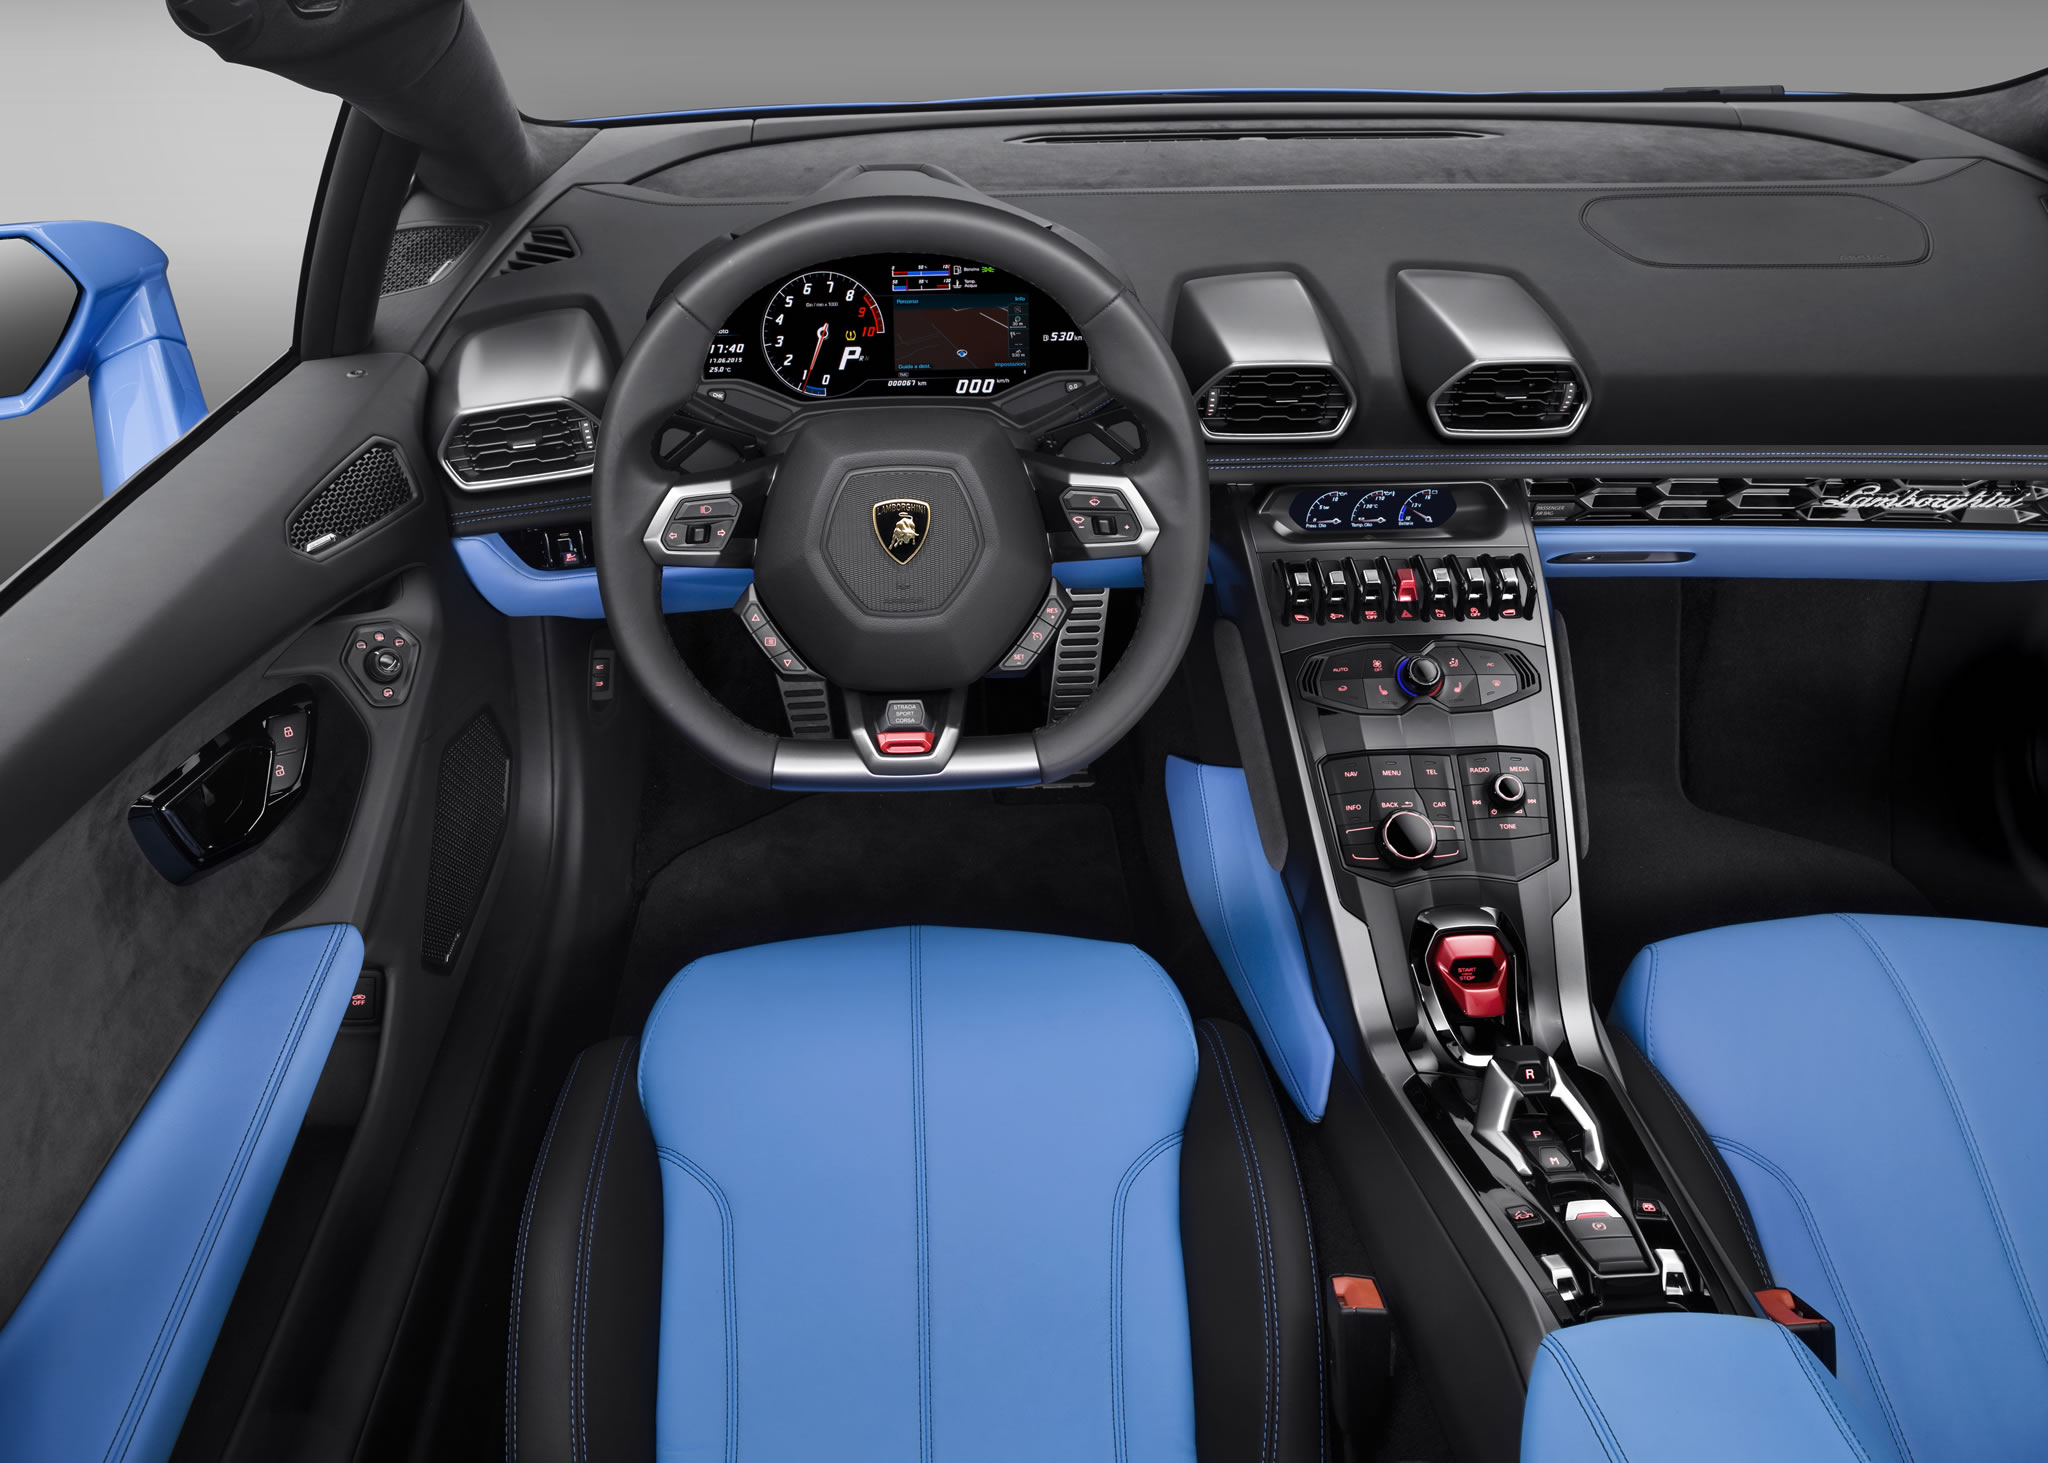 2016 lamborghini huracan lp610 4 spyder interior photo. Black Bedroom Furniture Sets. Home Design Ideas